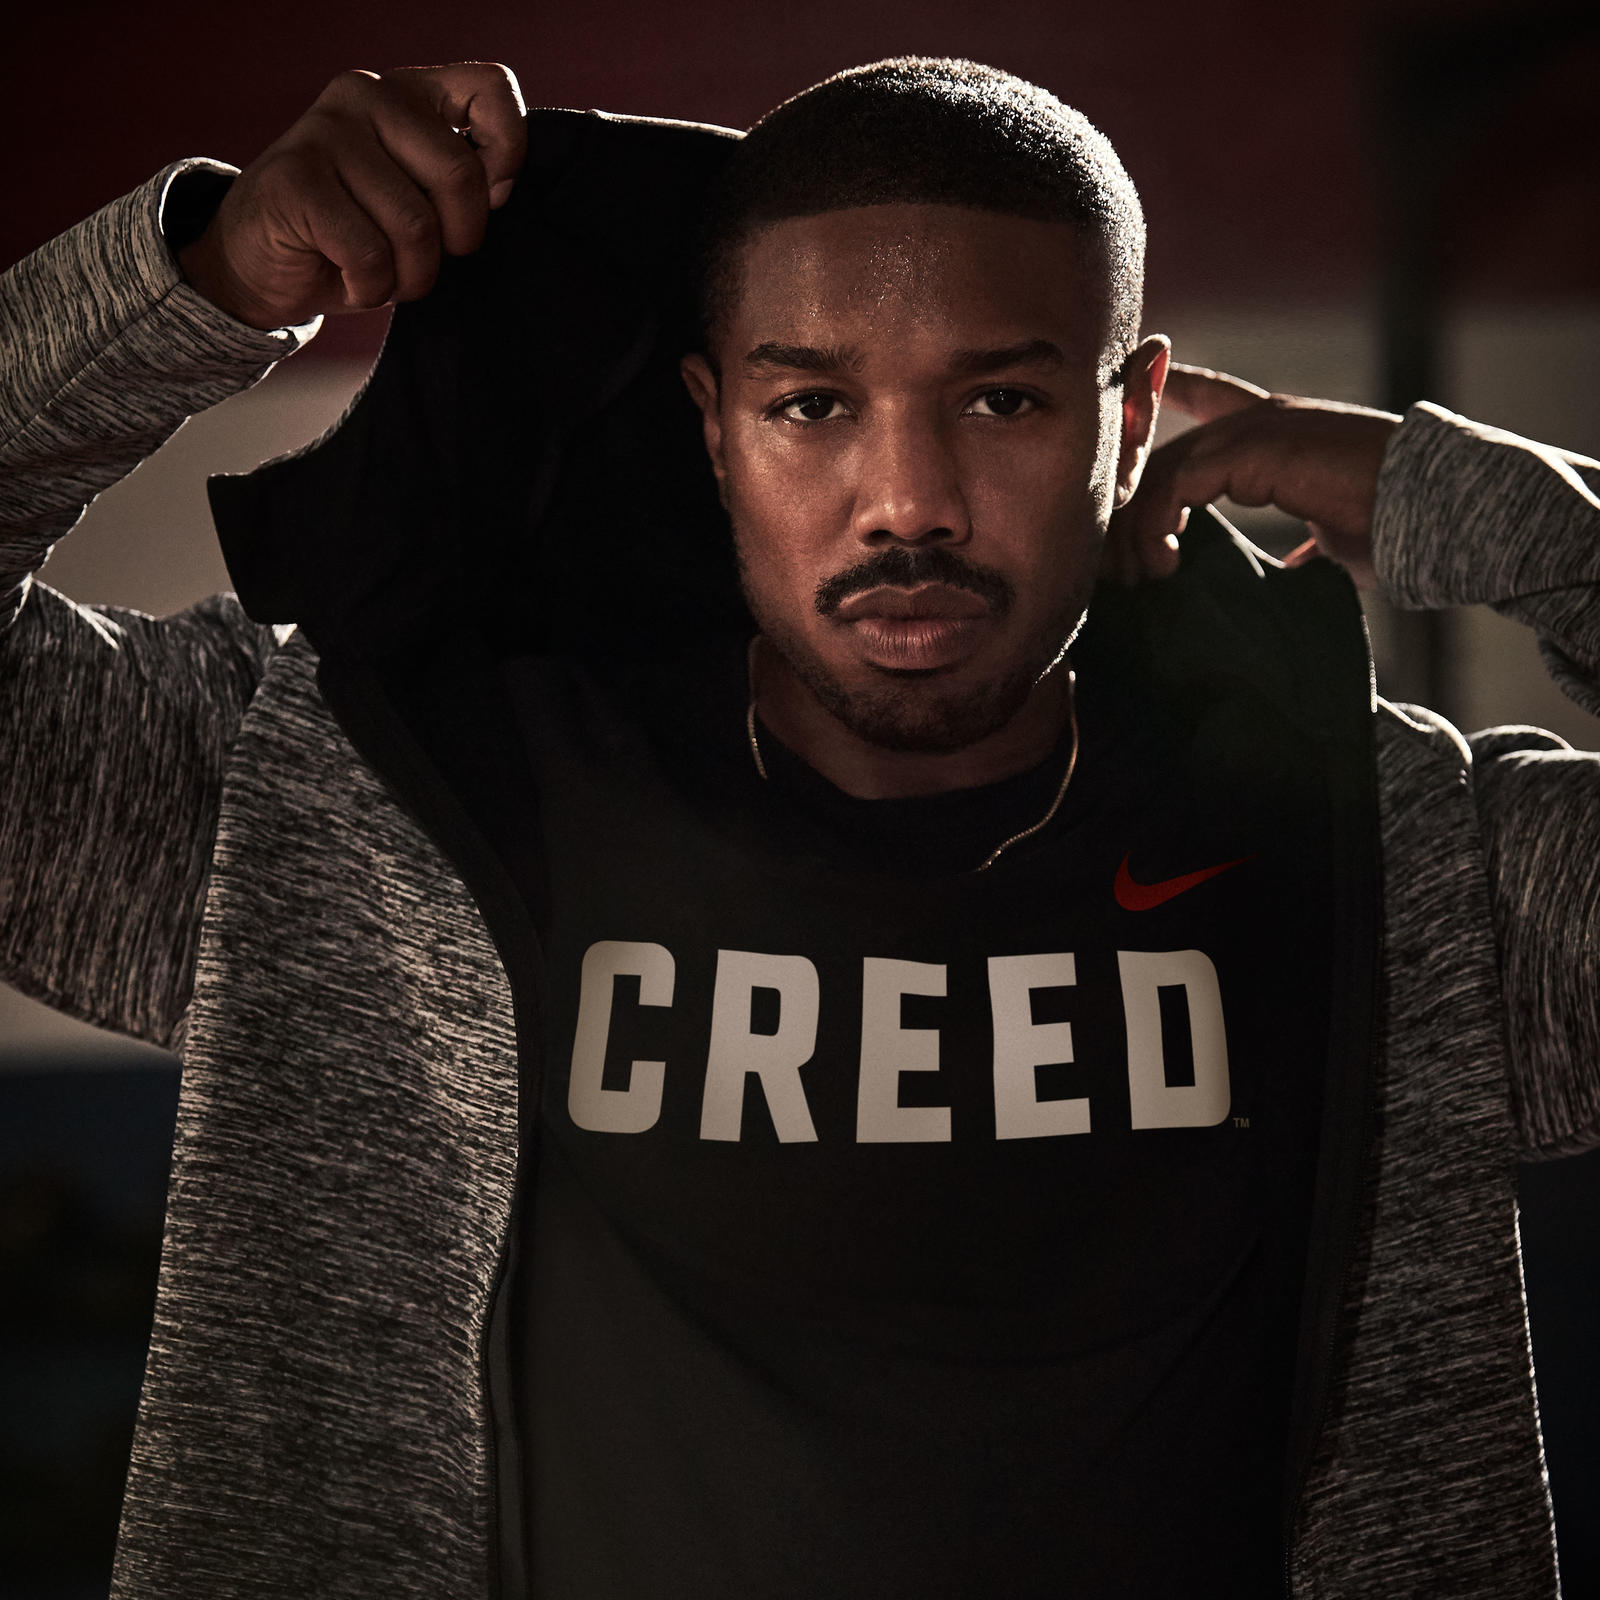 Creed2 ho18 tr metcon 3 na acreed 19734 rgb re square 1600